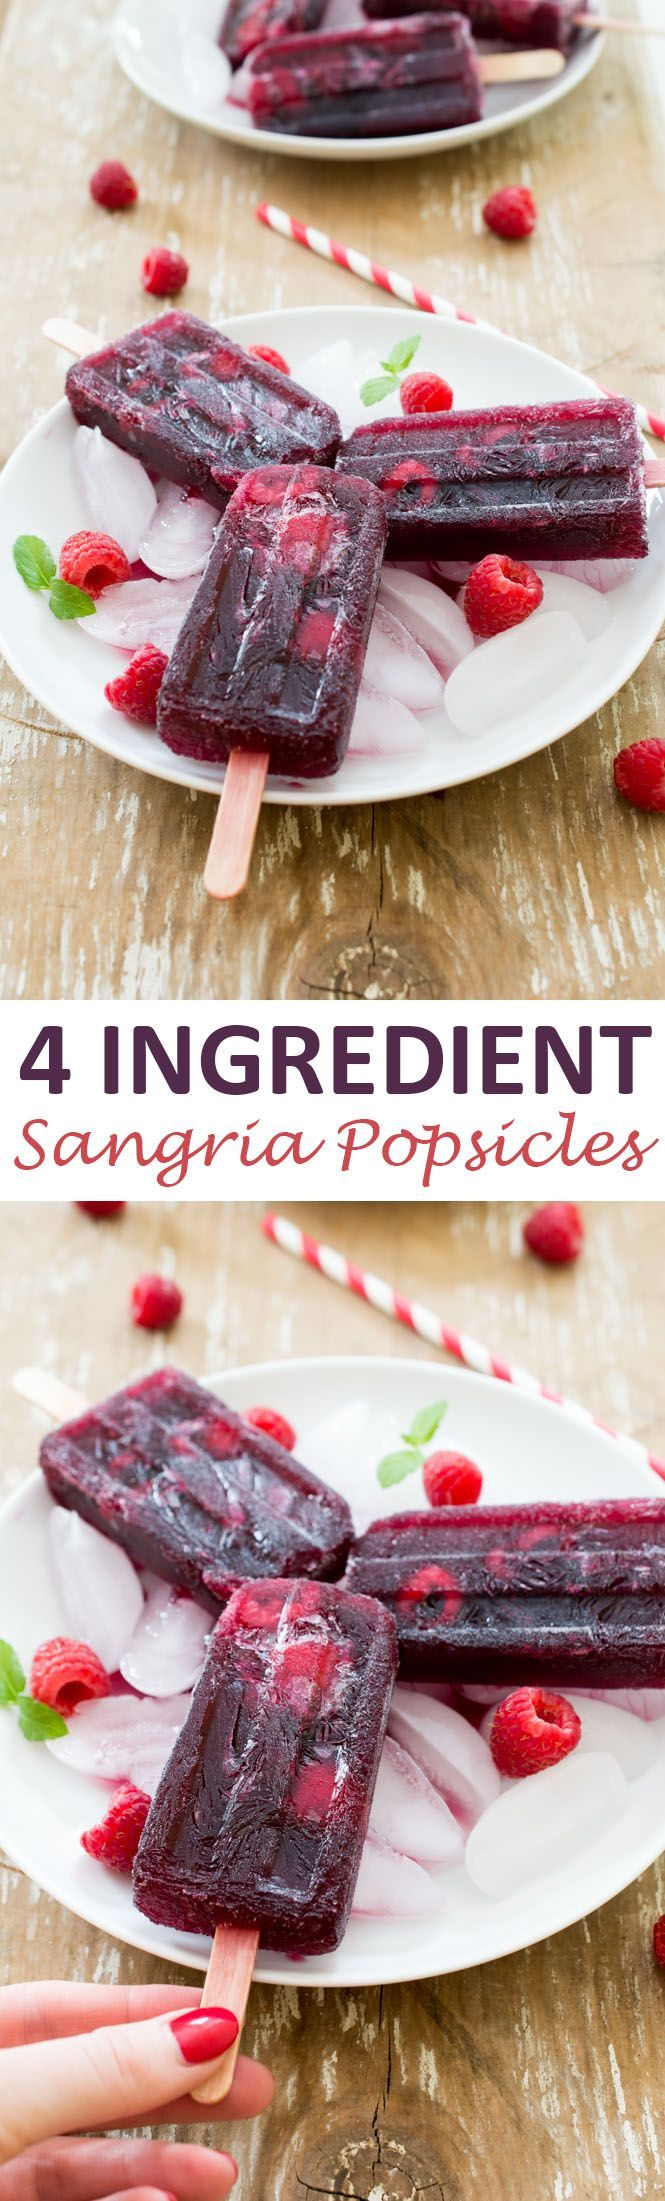 4 Ingredient Raspberry Sangria Popsicles. So easy to make and super refreshing. Perfect for a hot summer day!